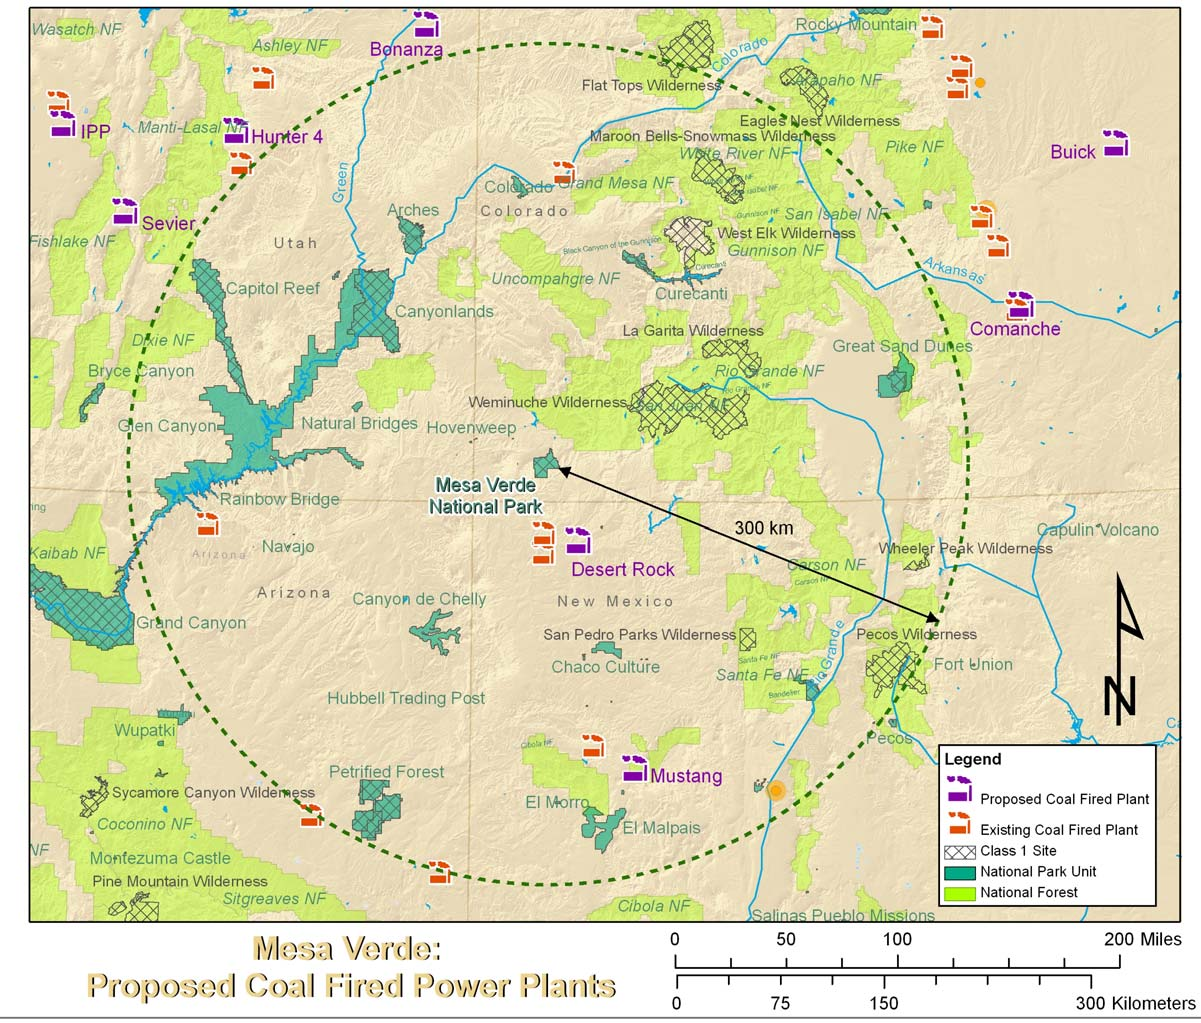 Power plants that have received permits or are in active permit process Plant Location Owner Size (MW) Distance from Park CO2 tons/yr SO2 tons/yr NOx tons/yr San Juan 1500 County, NM MW Desert Rock